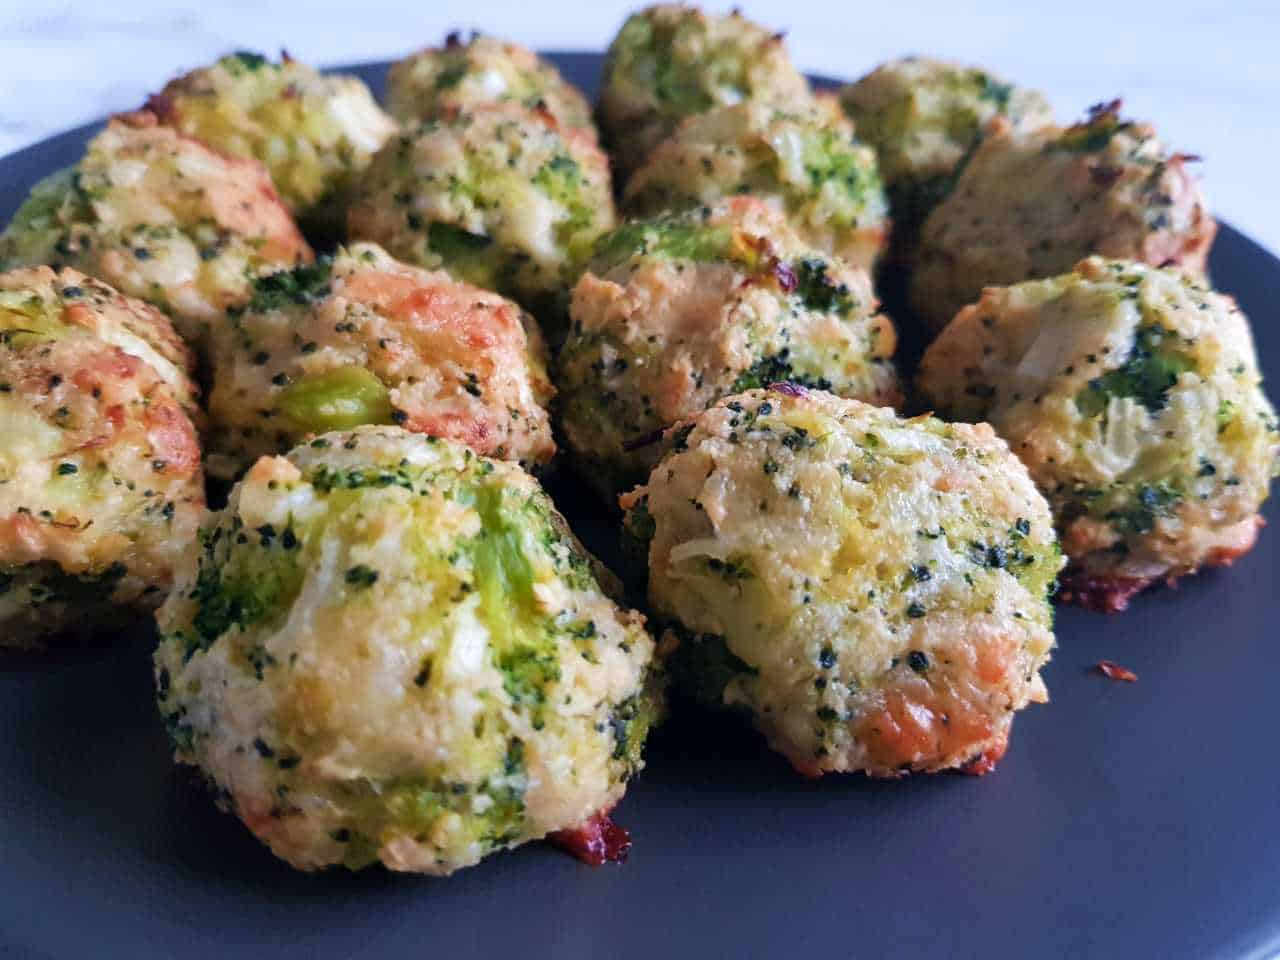 Broccoli and cheese balls on a gray plate.